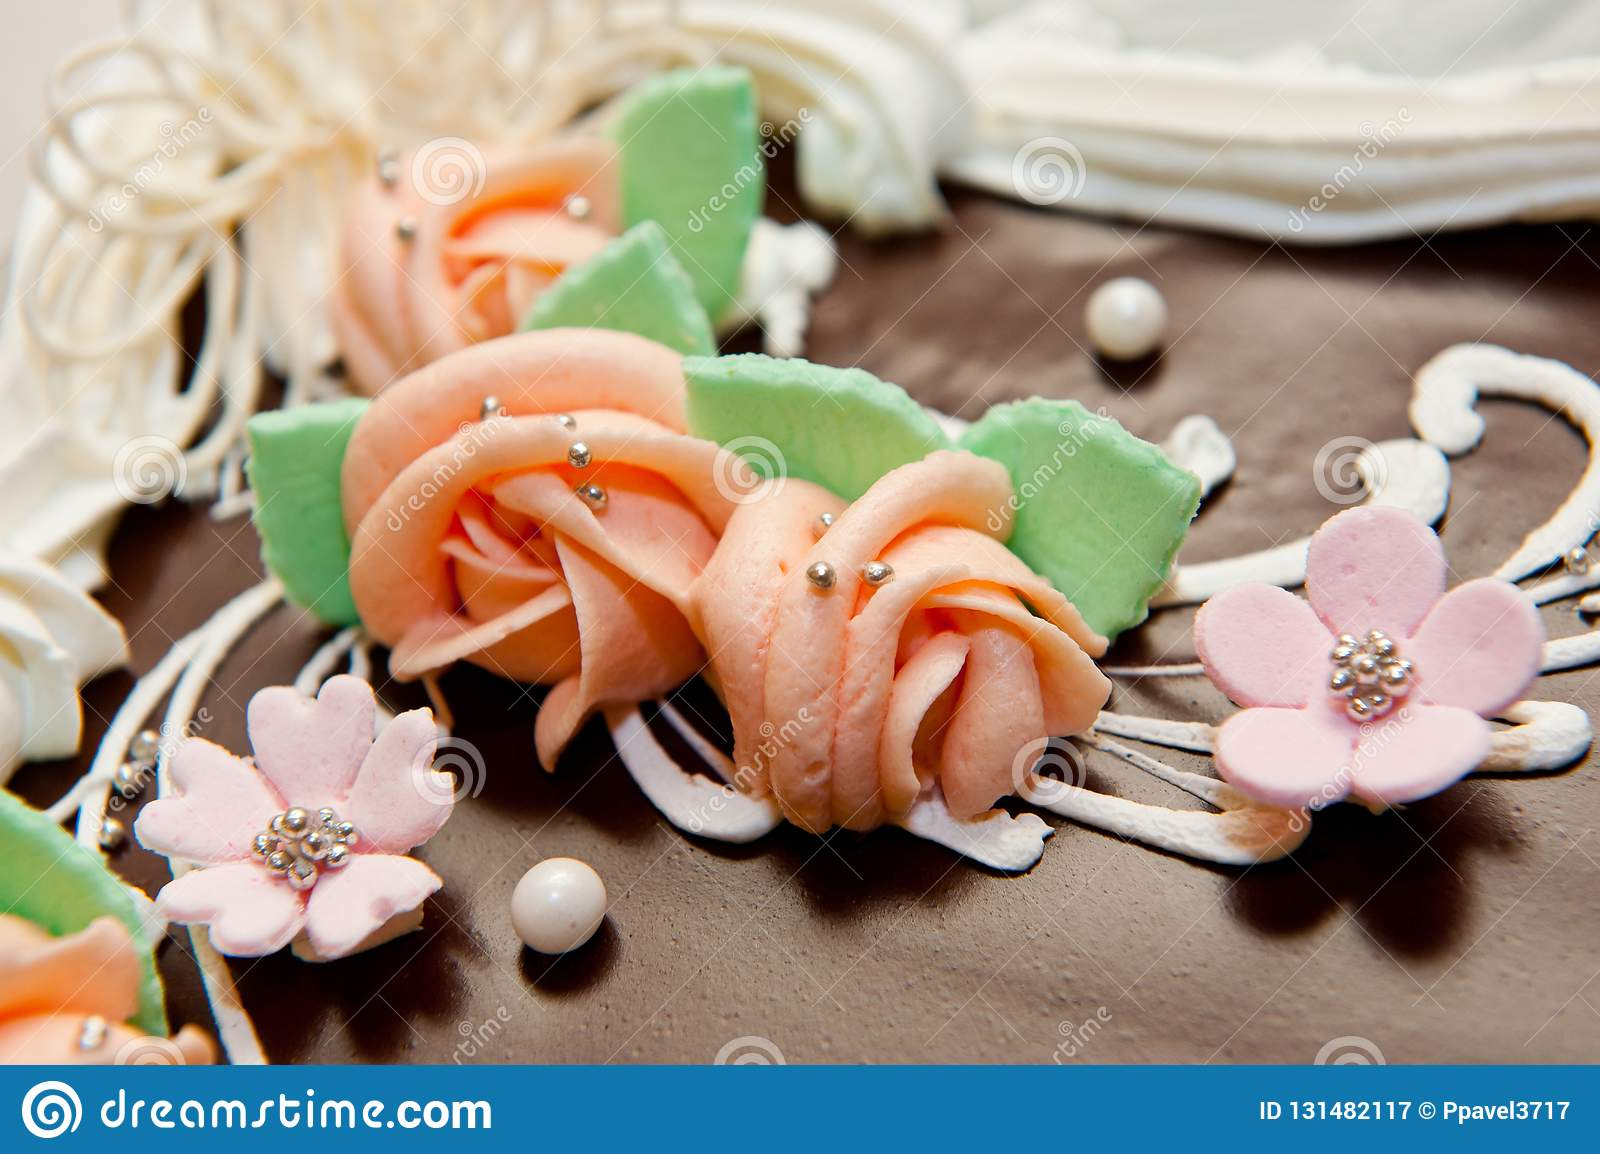 Big Beautiful Chocolate Cake Decorated With Decorative Flowers And